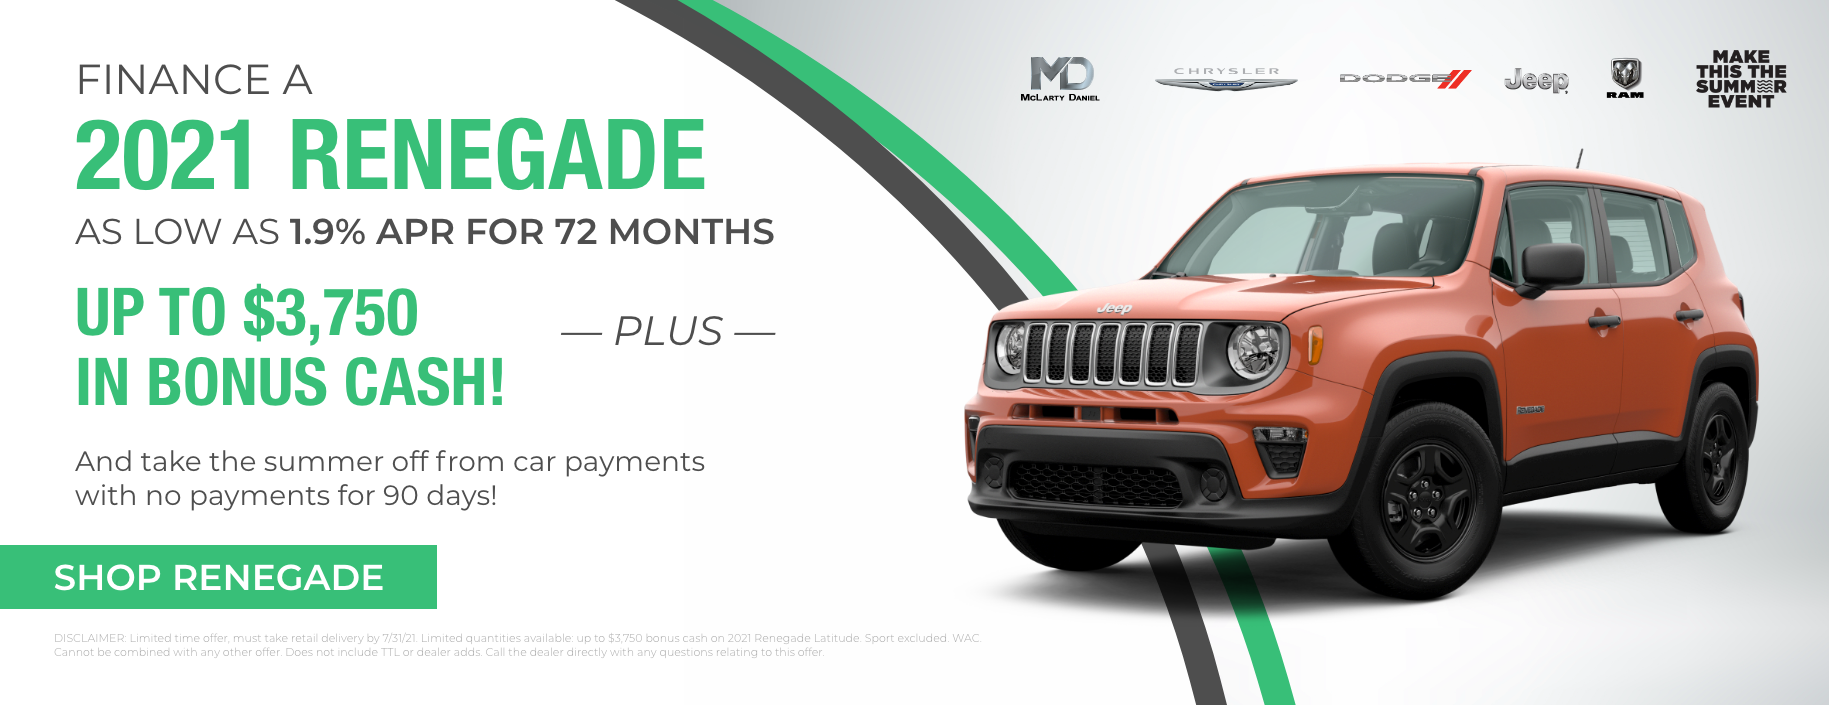 Finance a 2021 Renegade as low as 1.9% for 72 months plus up to $3,750 bonus cash! And take the summer off from car payments with no payments for 90 days!